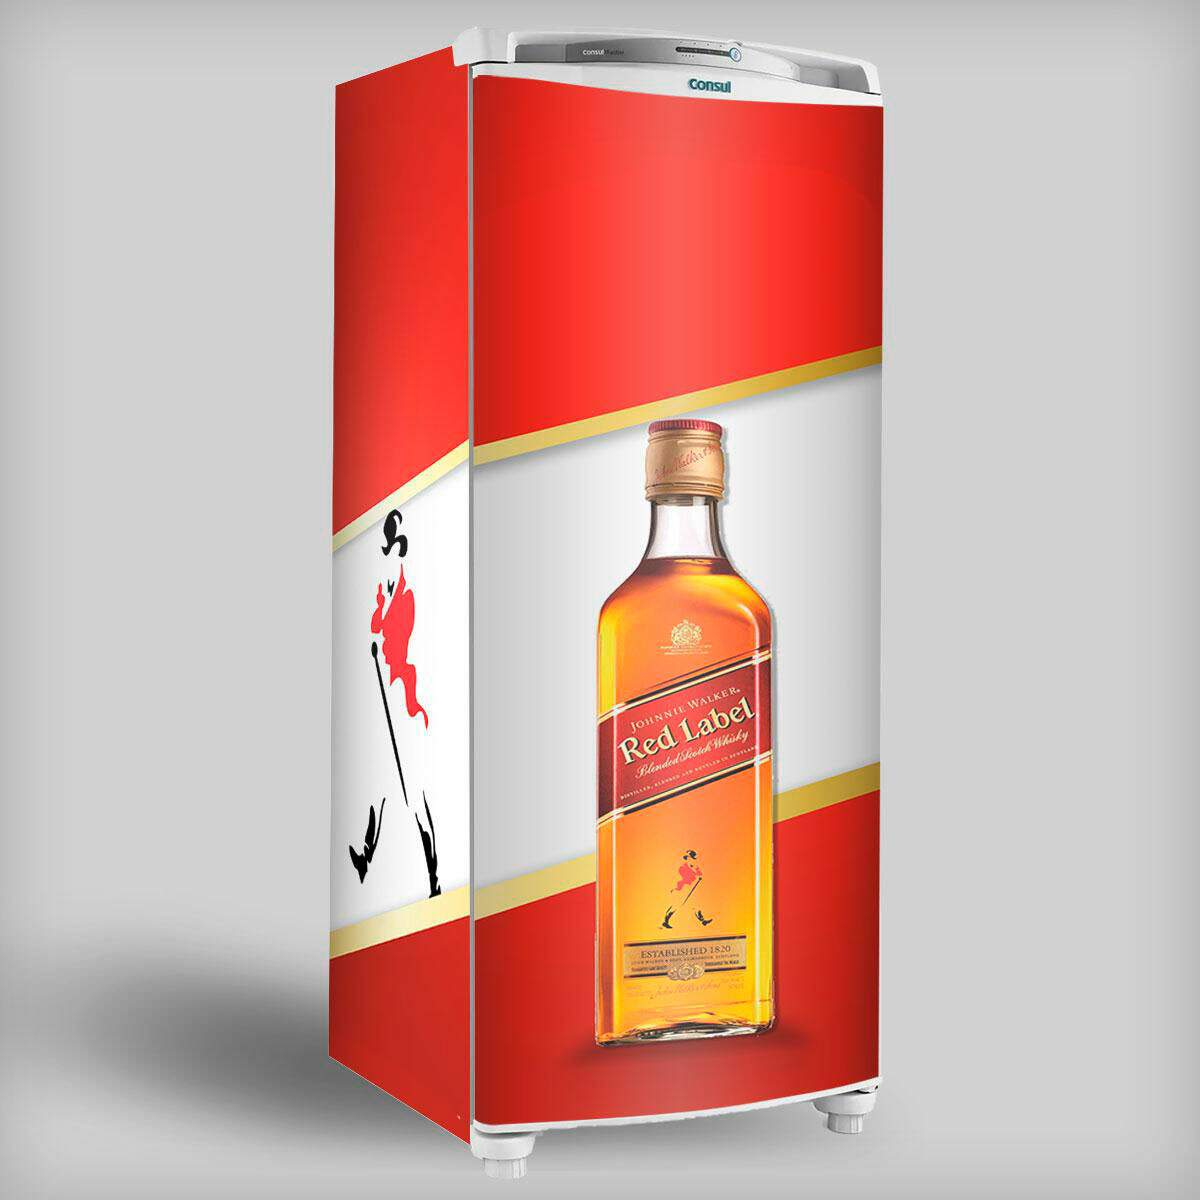 Envelopamento de Geladeira Inteira - Johnny Walker Red Label